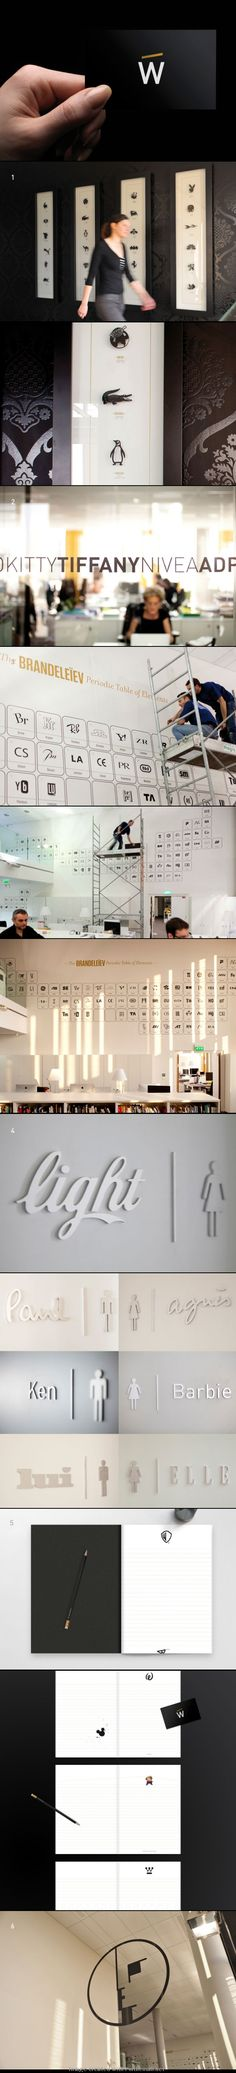 #branding W agency, via ID : http://identitydesigned.com/wcie/... - a grouped images picture - Pin Them All